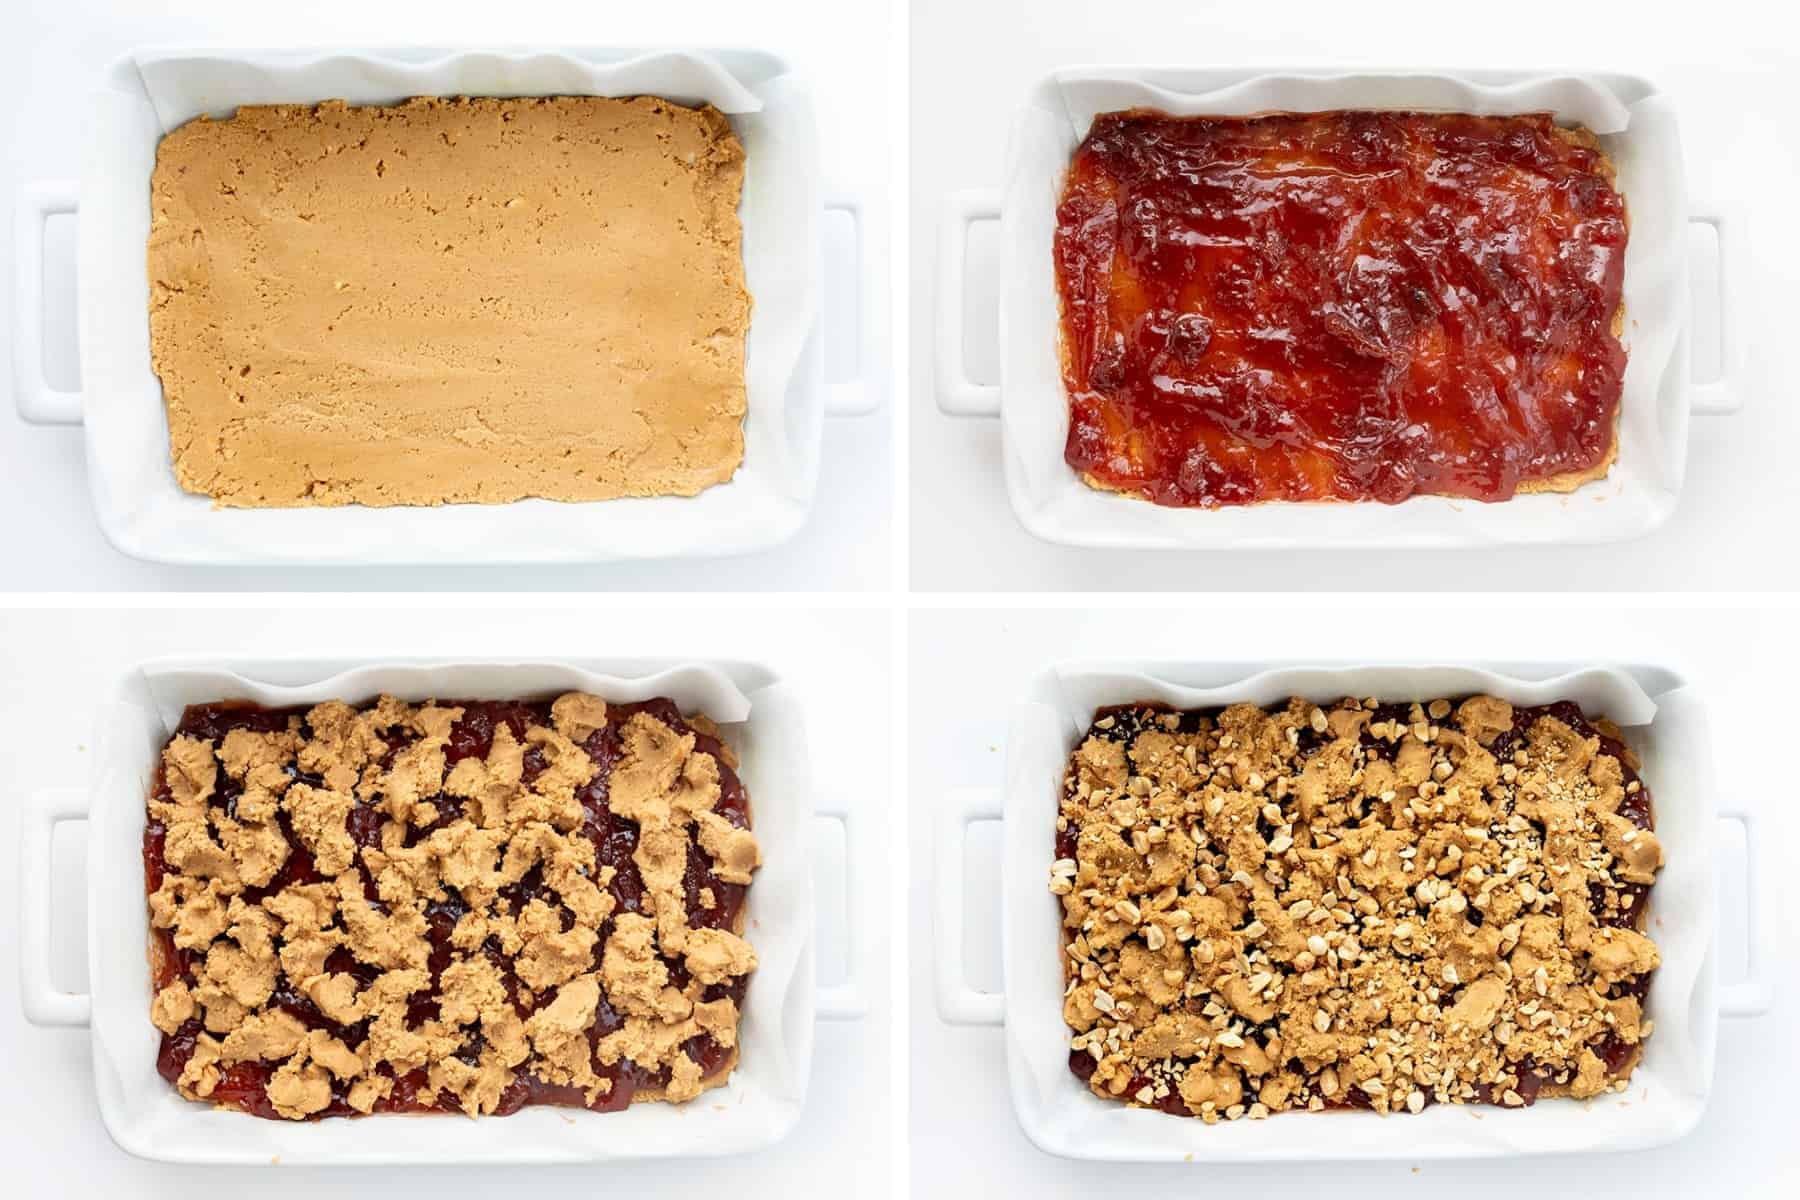 Process Steps for Making Peanut Butter and Jelly Bars